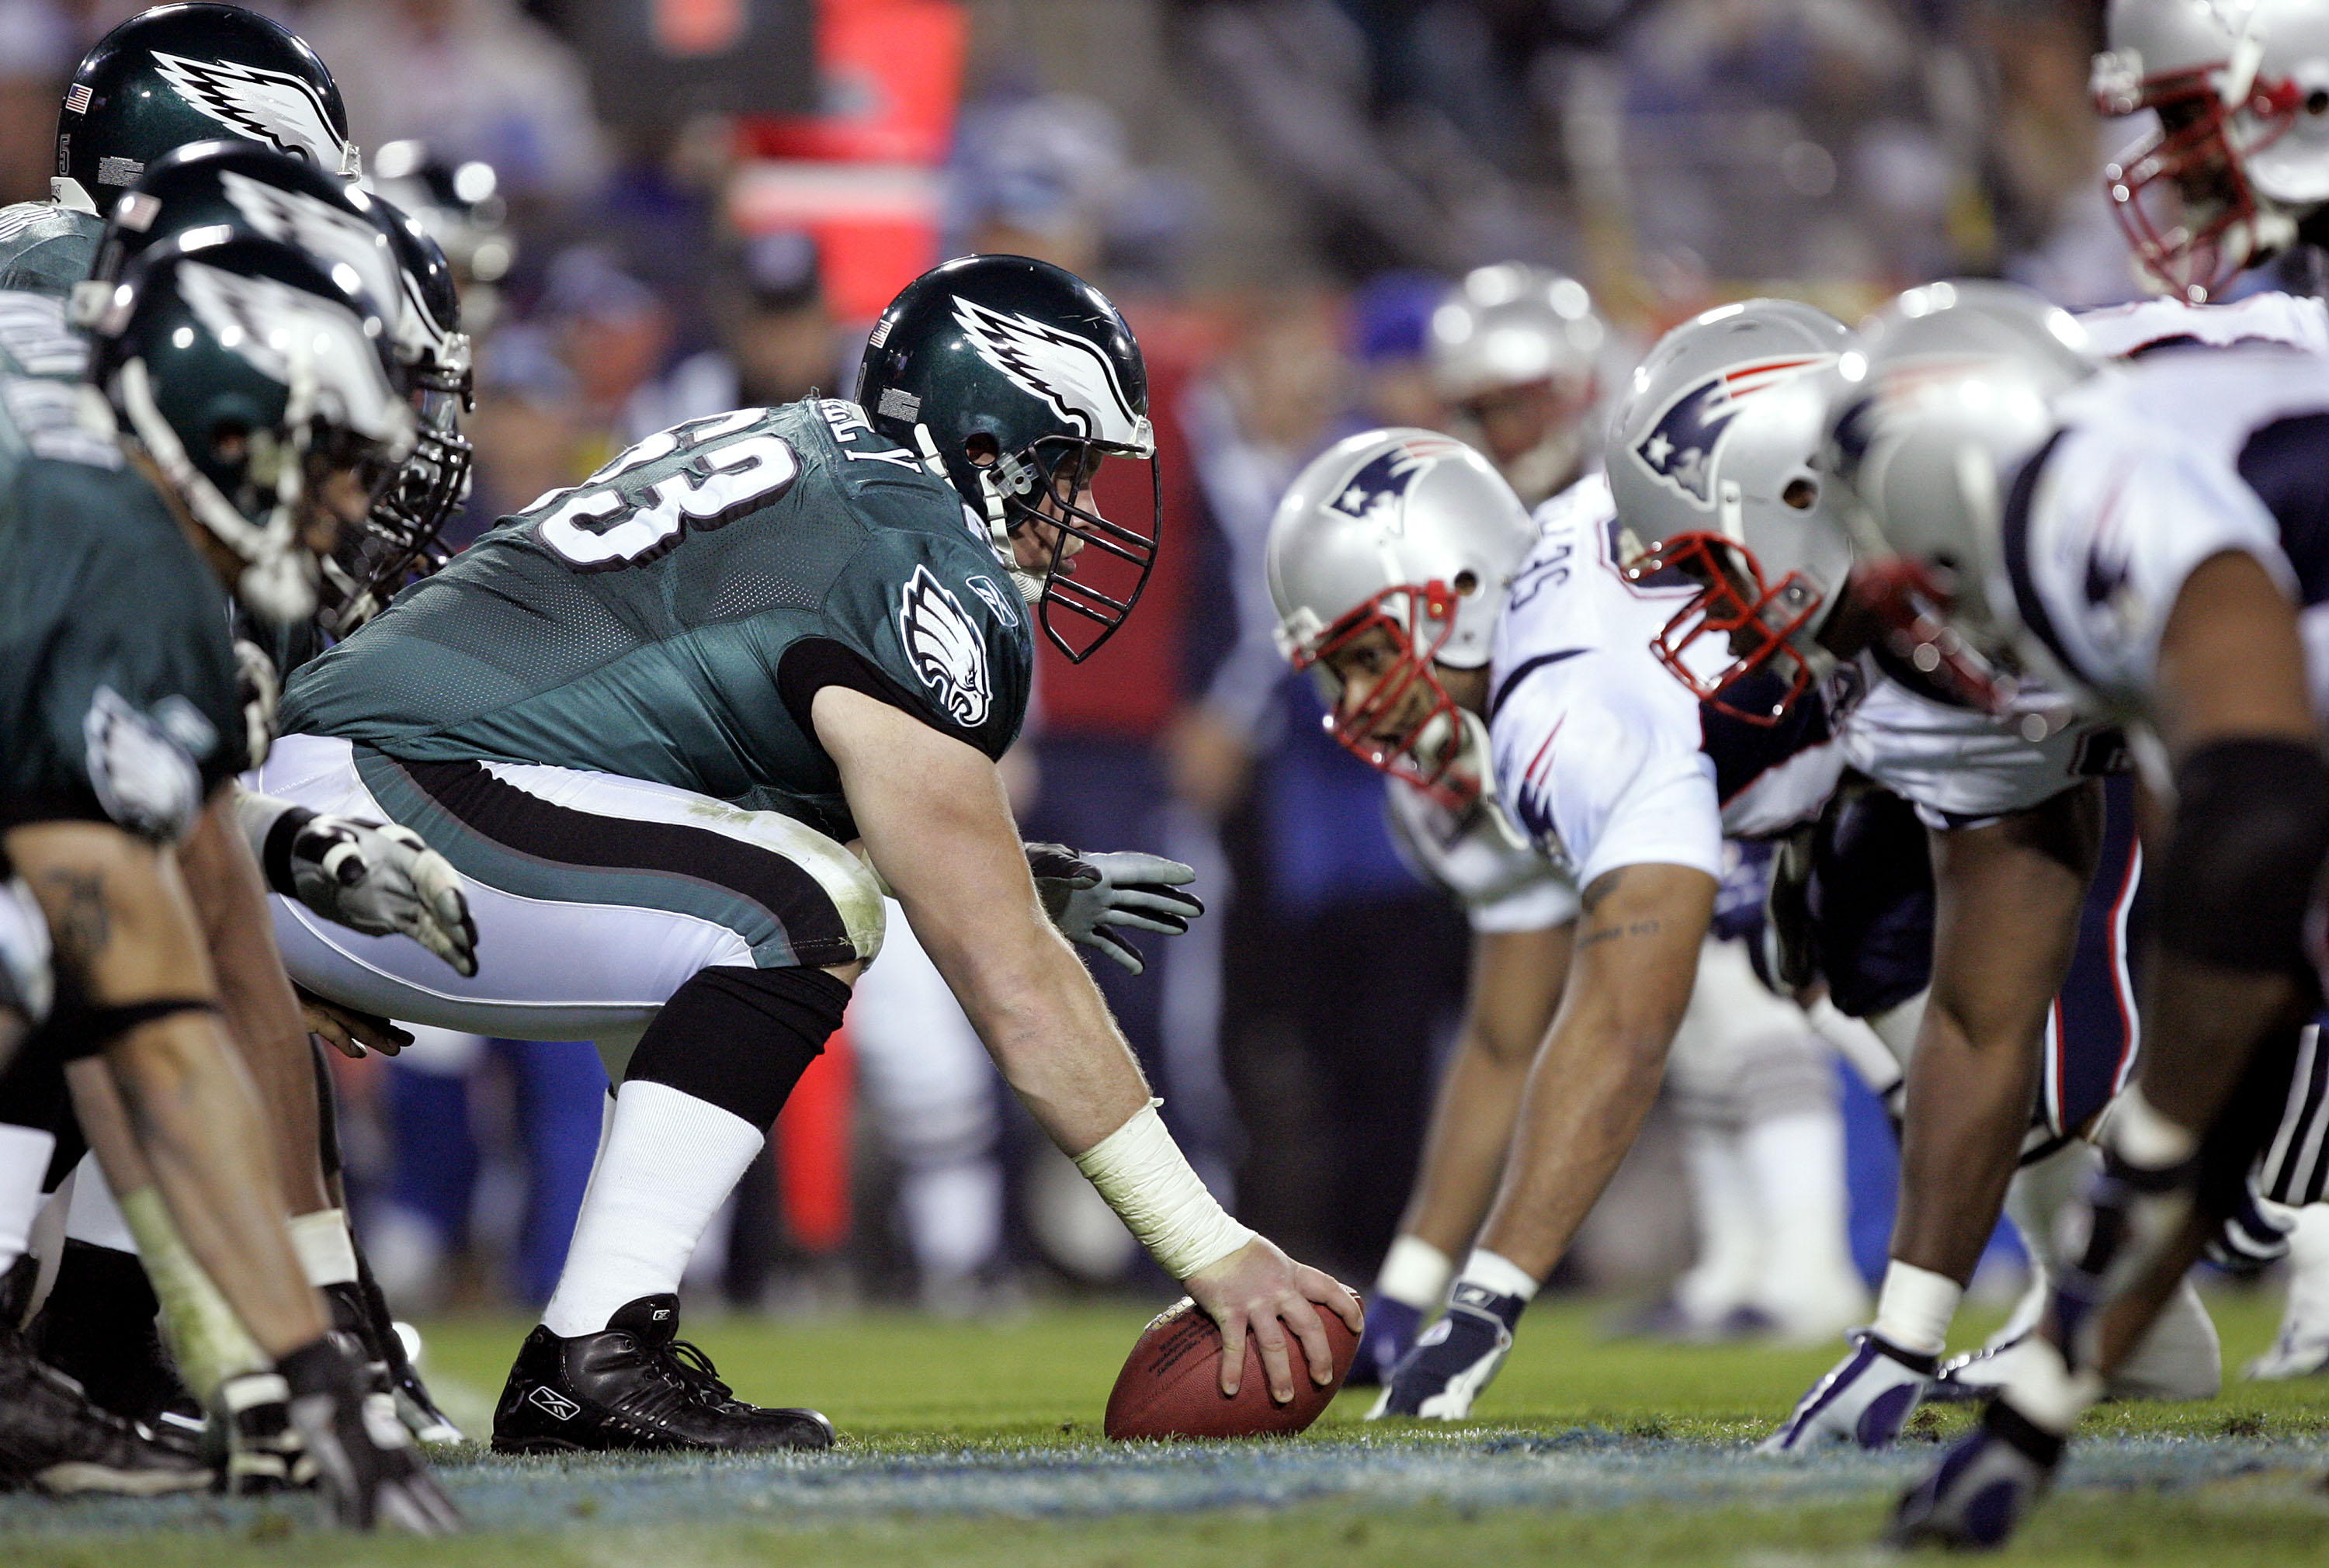 JACKSONVILLE, FL - FEBRUARY 06:  Hank Fraley #63 of the Philadelphia Eagles prepares to snap against the New England Patriots in the fourth quarter of Super Bowl XXXIX at Alltel Stadium on February 6, 2005 in Jacksonville, Florida.  (Photo by Brian Bahr/G